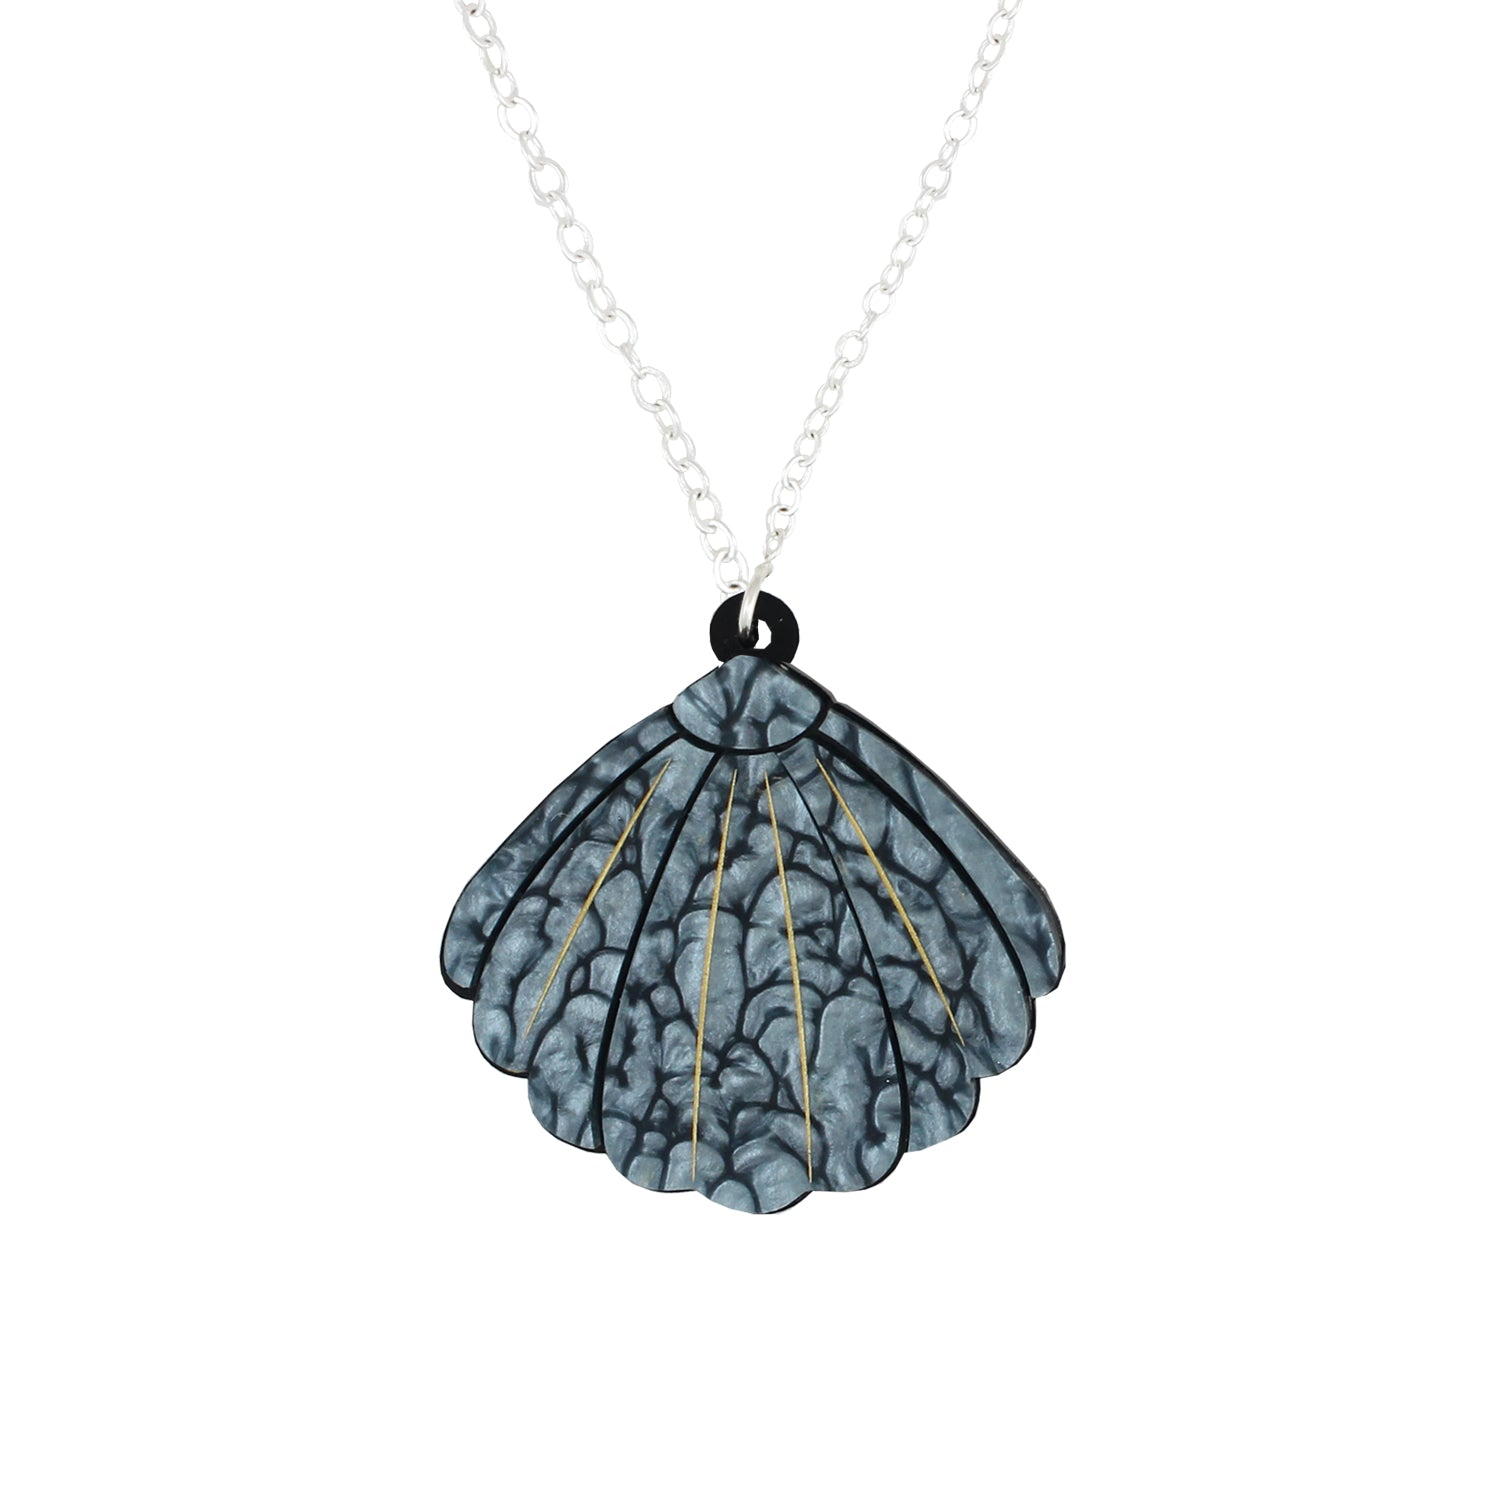 Small Blue Shell necklace